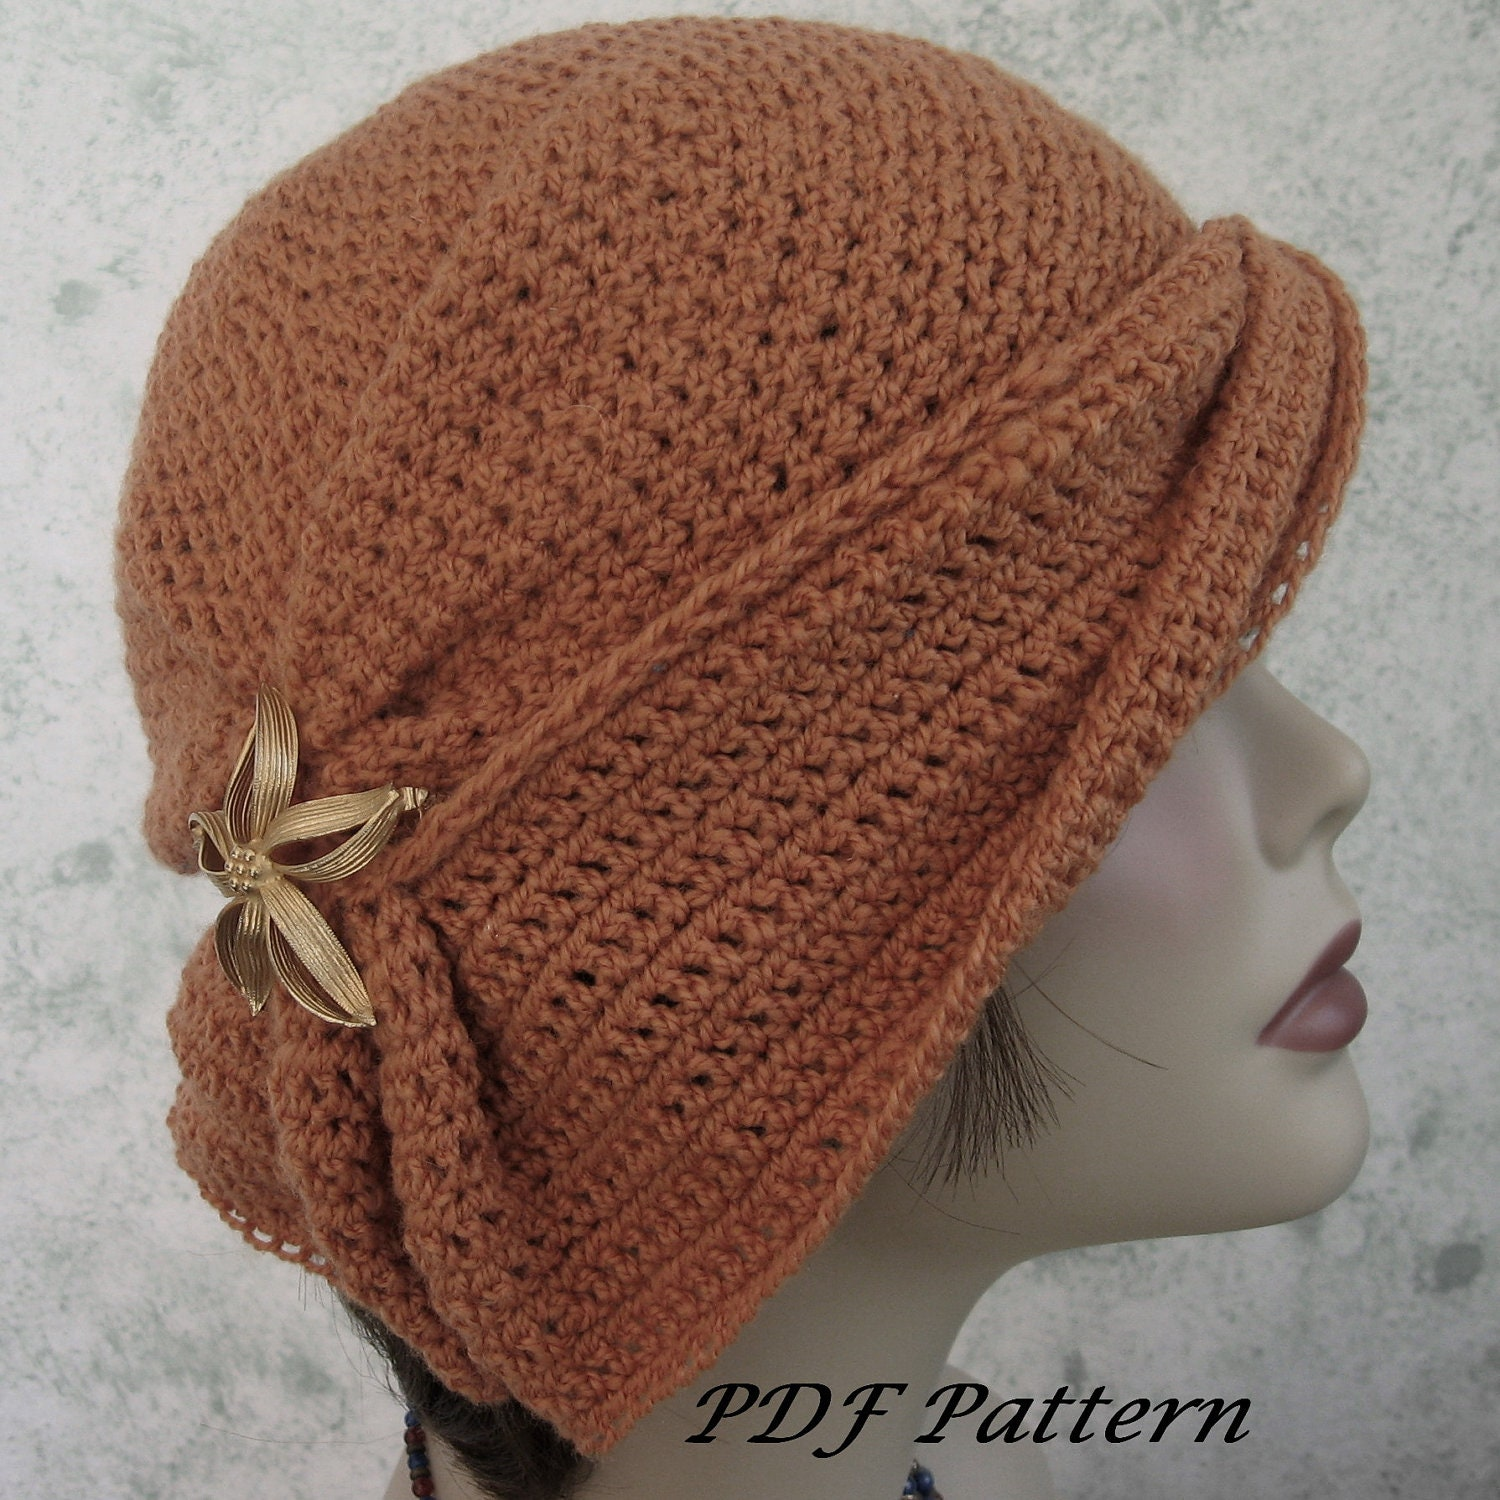 Free Crochet Hat Patterns To Download : Crochet HAT PATTERN Cloche With Side Gathers And by ...